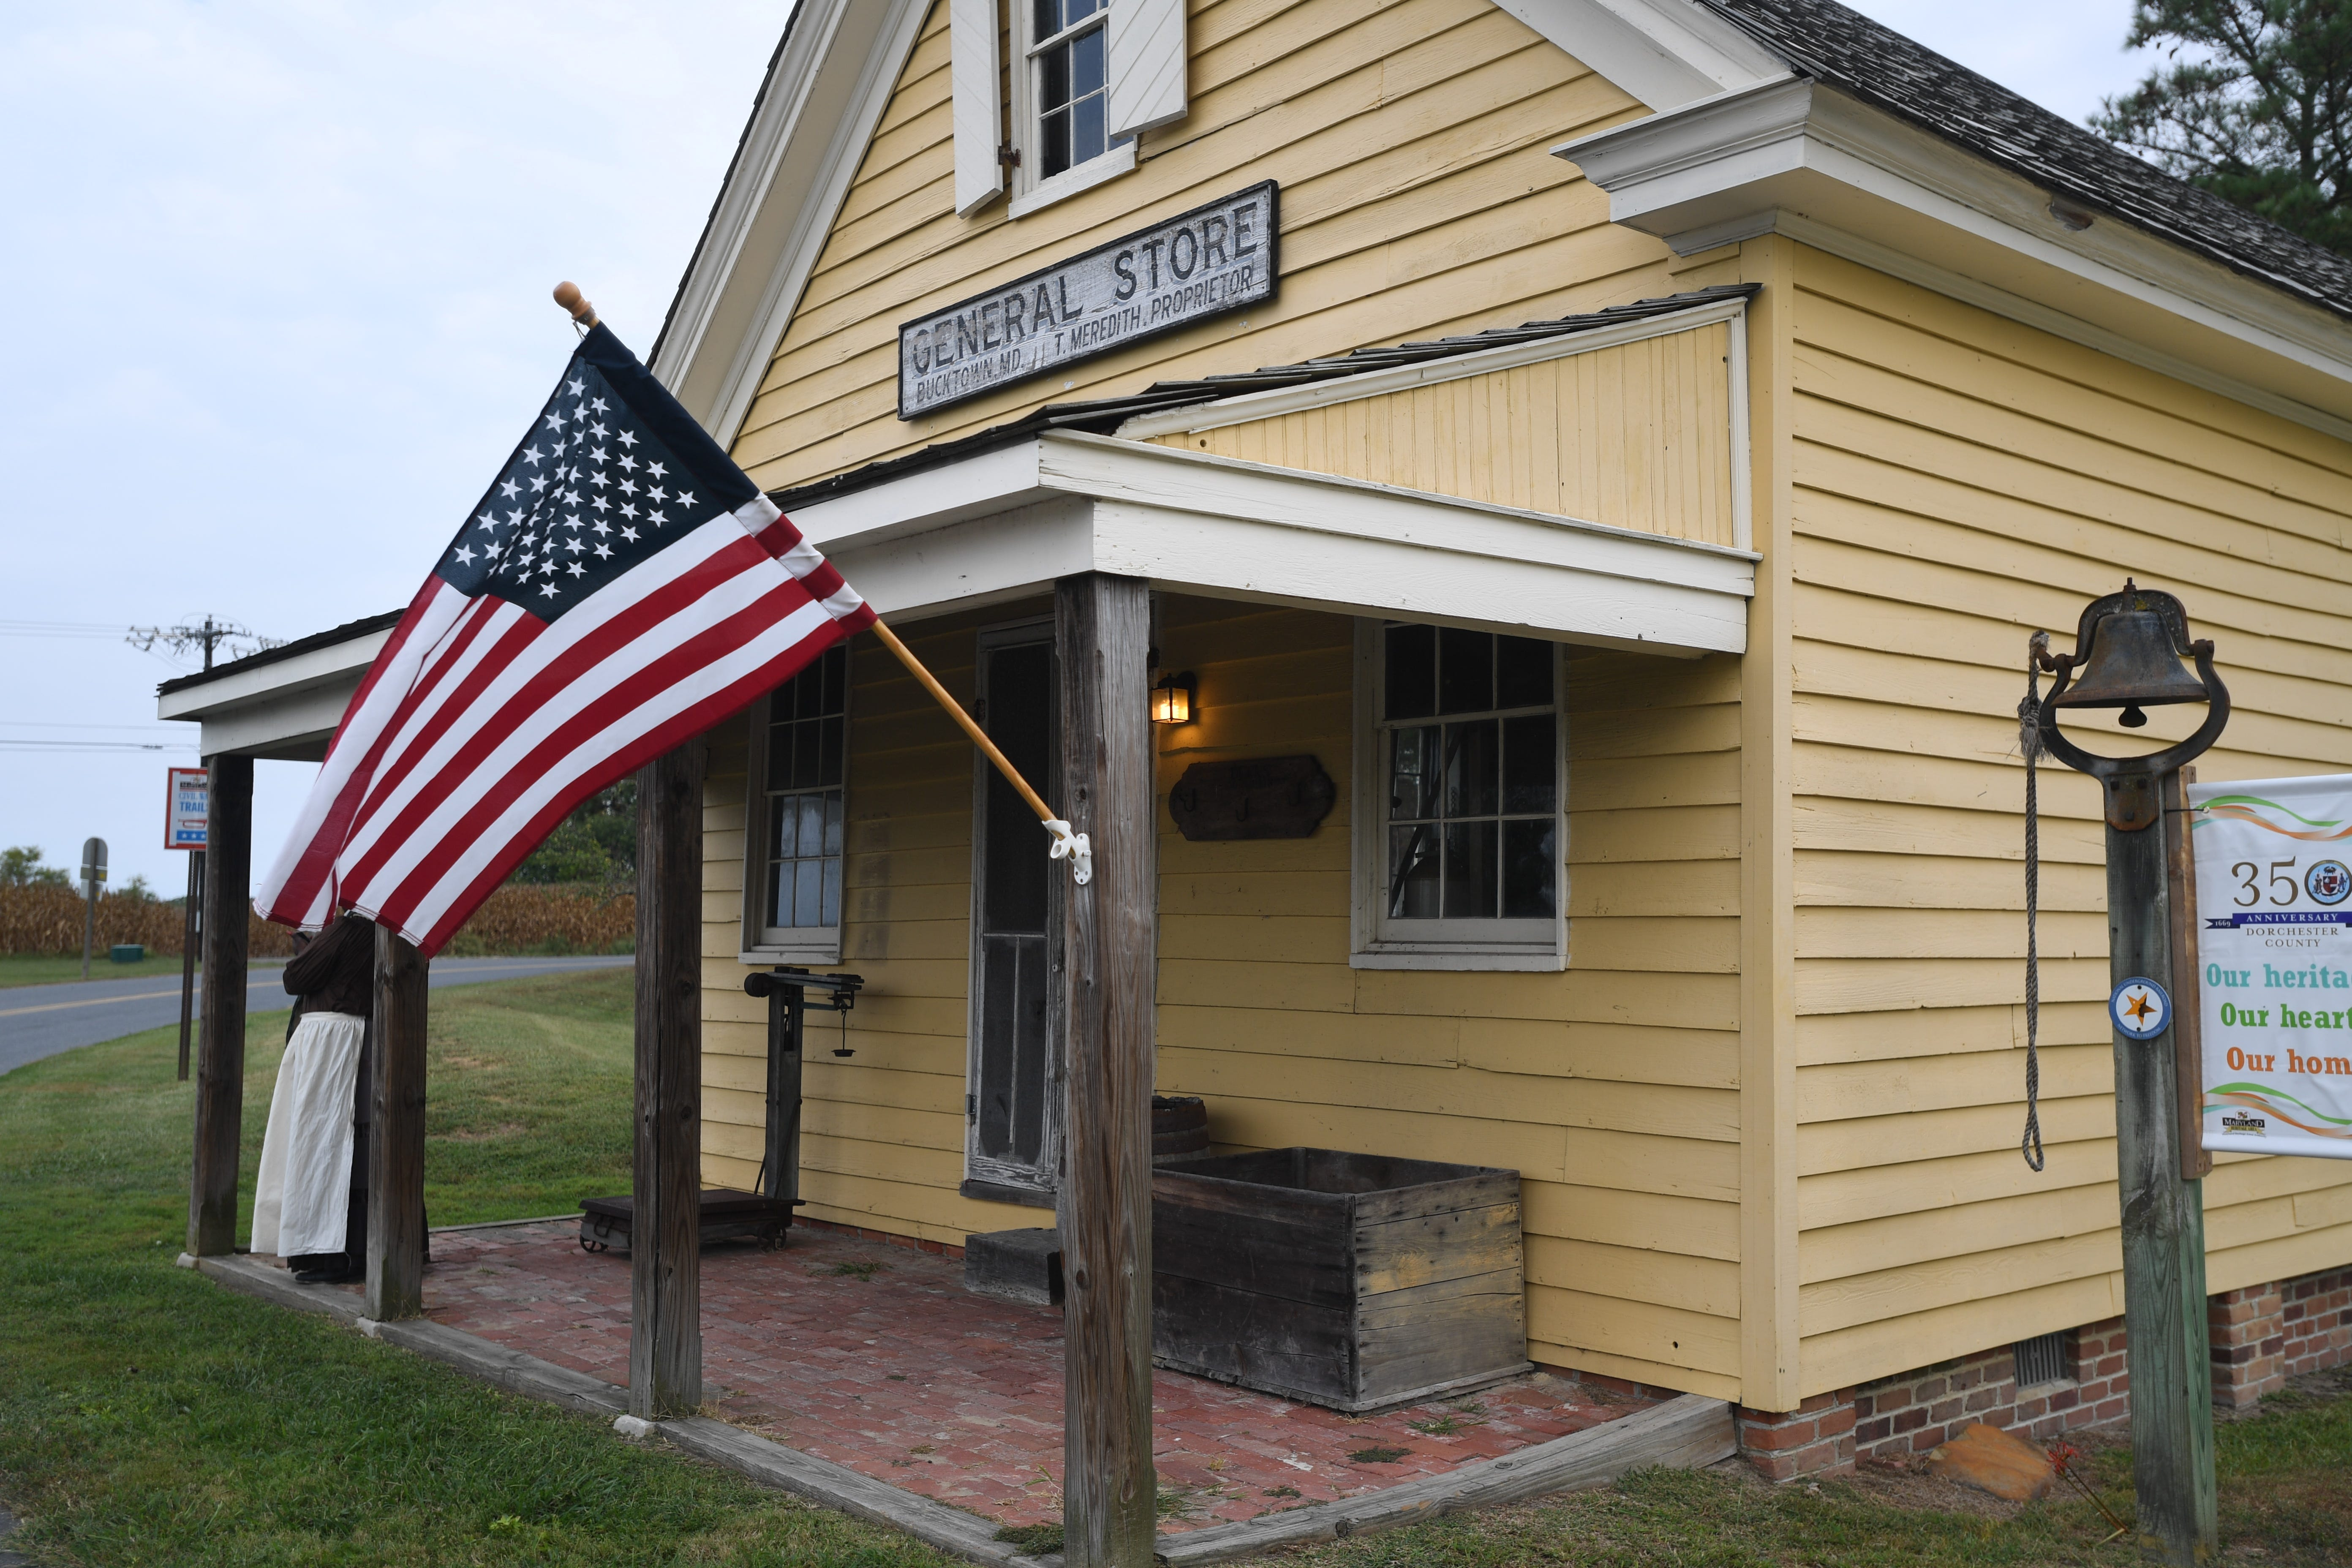 The Bucktown General Store, which still stands in Cambridge, Maryland, is where a young Harriet Tubman refused to help capture an escaped slave. She was struck in the head during the incident and suffered a lifelong brain injury.